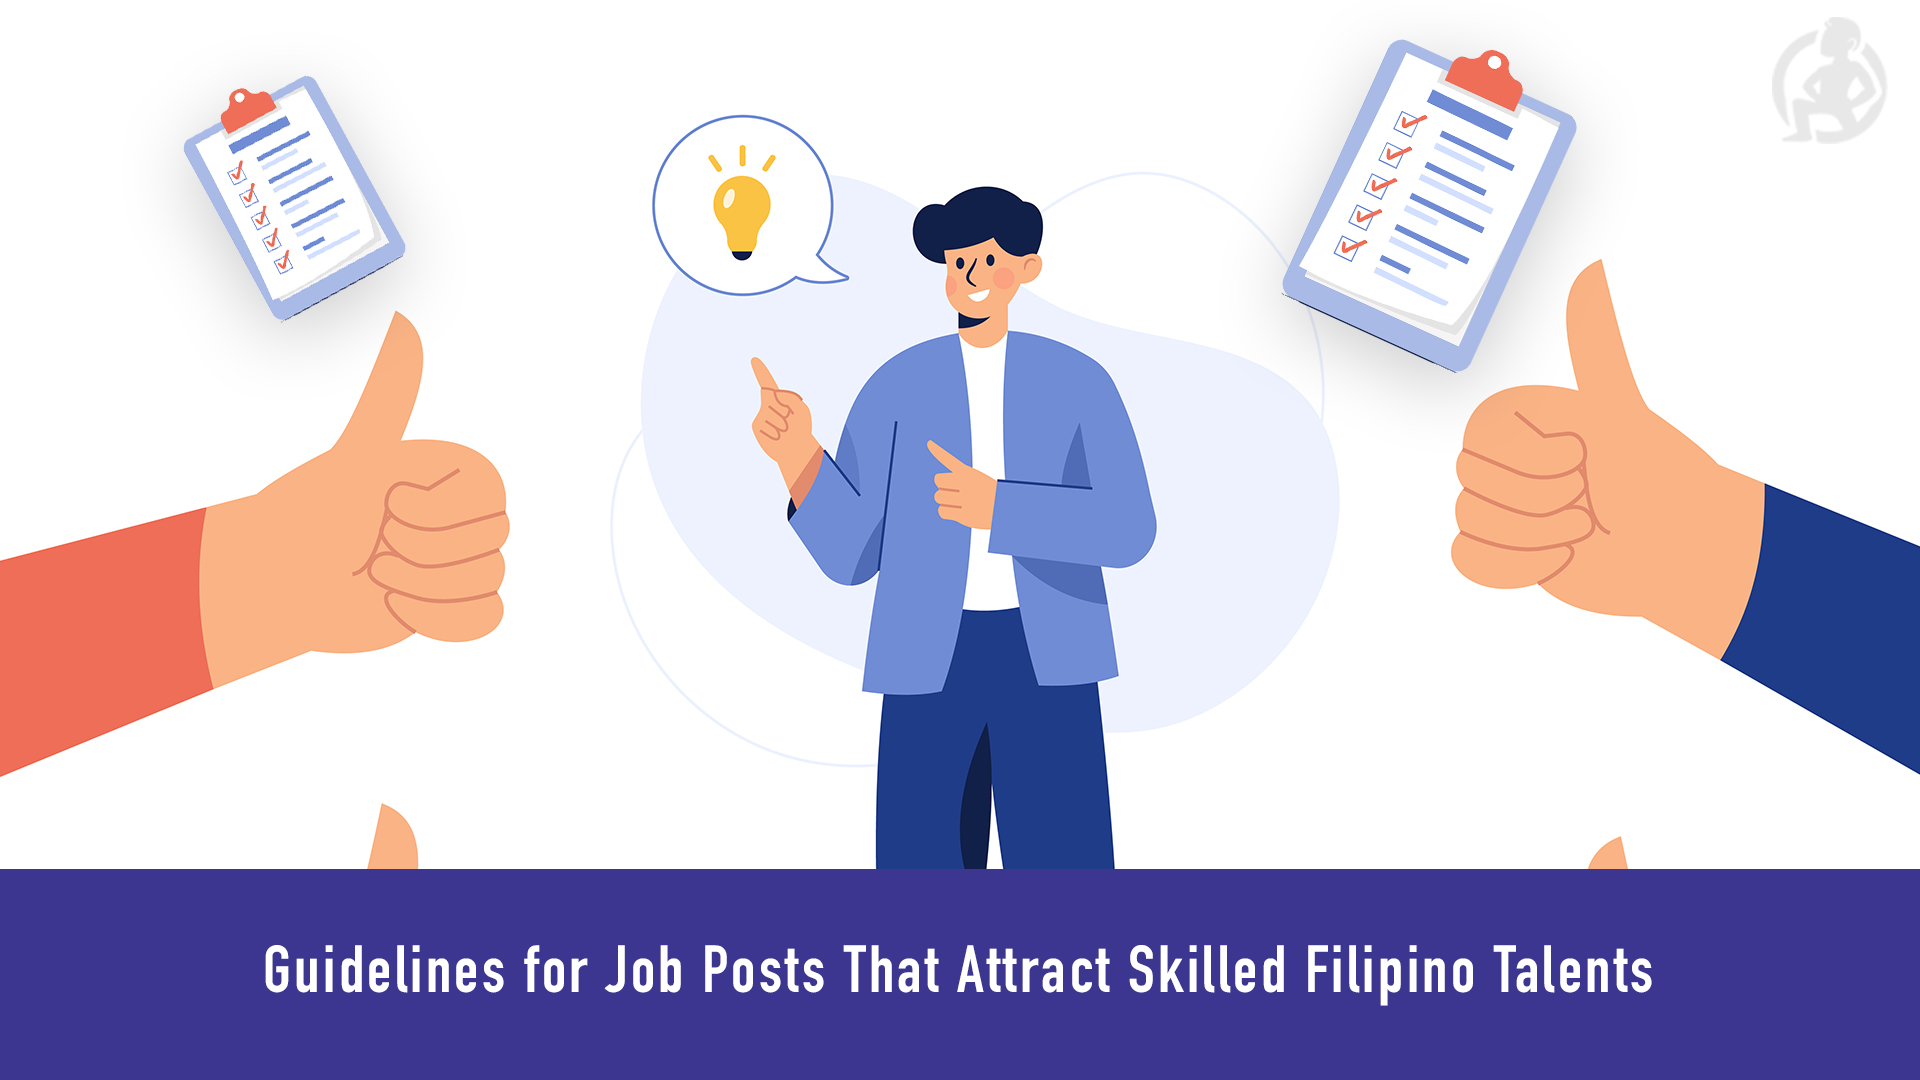 Guidelines for Job 487 Posts That Attract Skilled Filipino Talents Feature